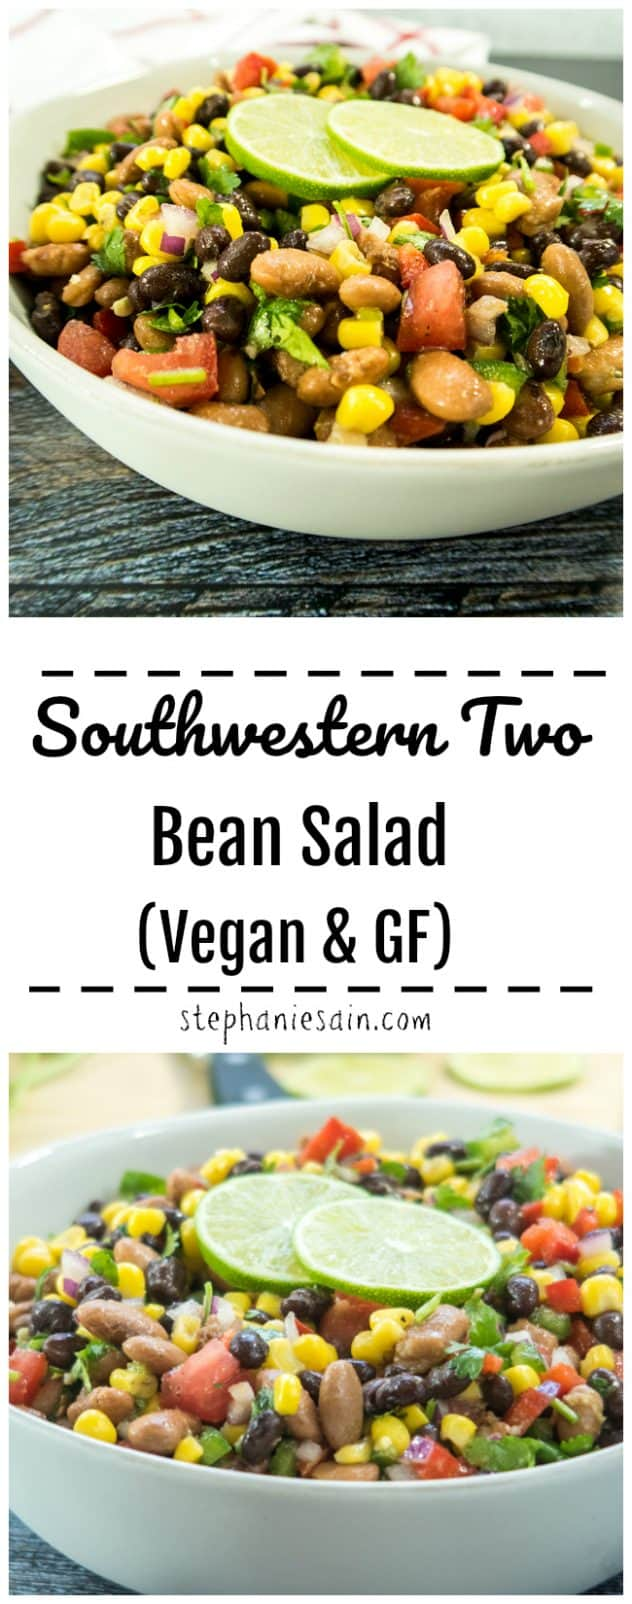 This Southwestern Two Bean Salad is perfect for all your Spring & Summertime gatherings. Can be made in less then 15 minutes, requires no cooking & is chocked full of a healthy tasty dose of veggies. Vegan & Gluten Free.